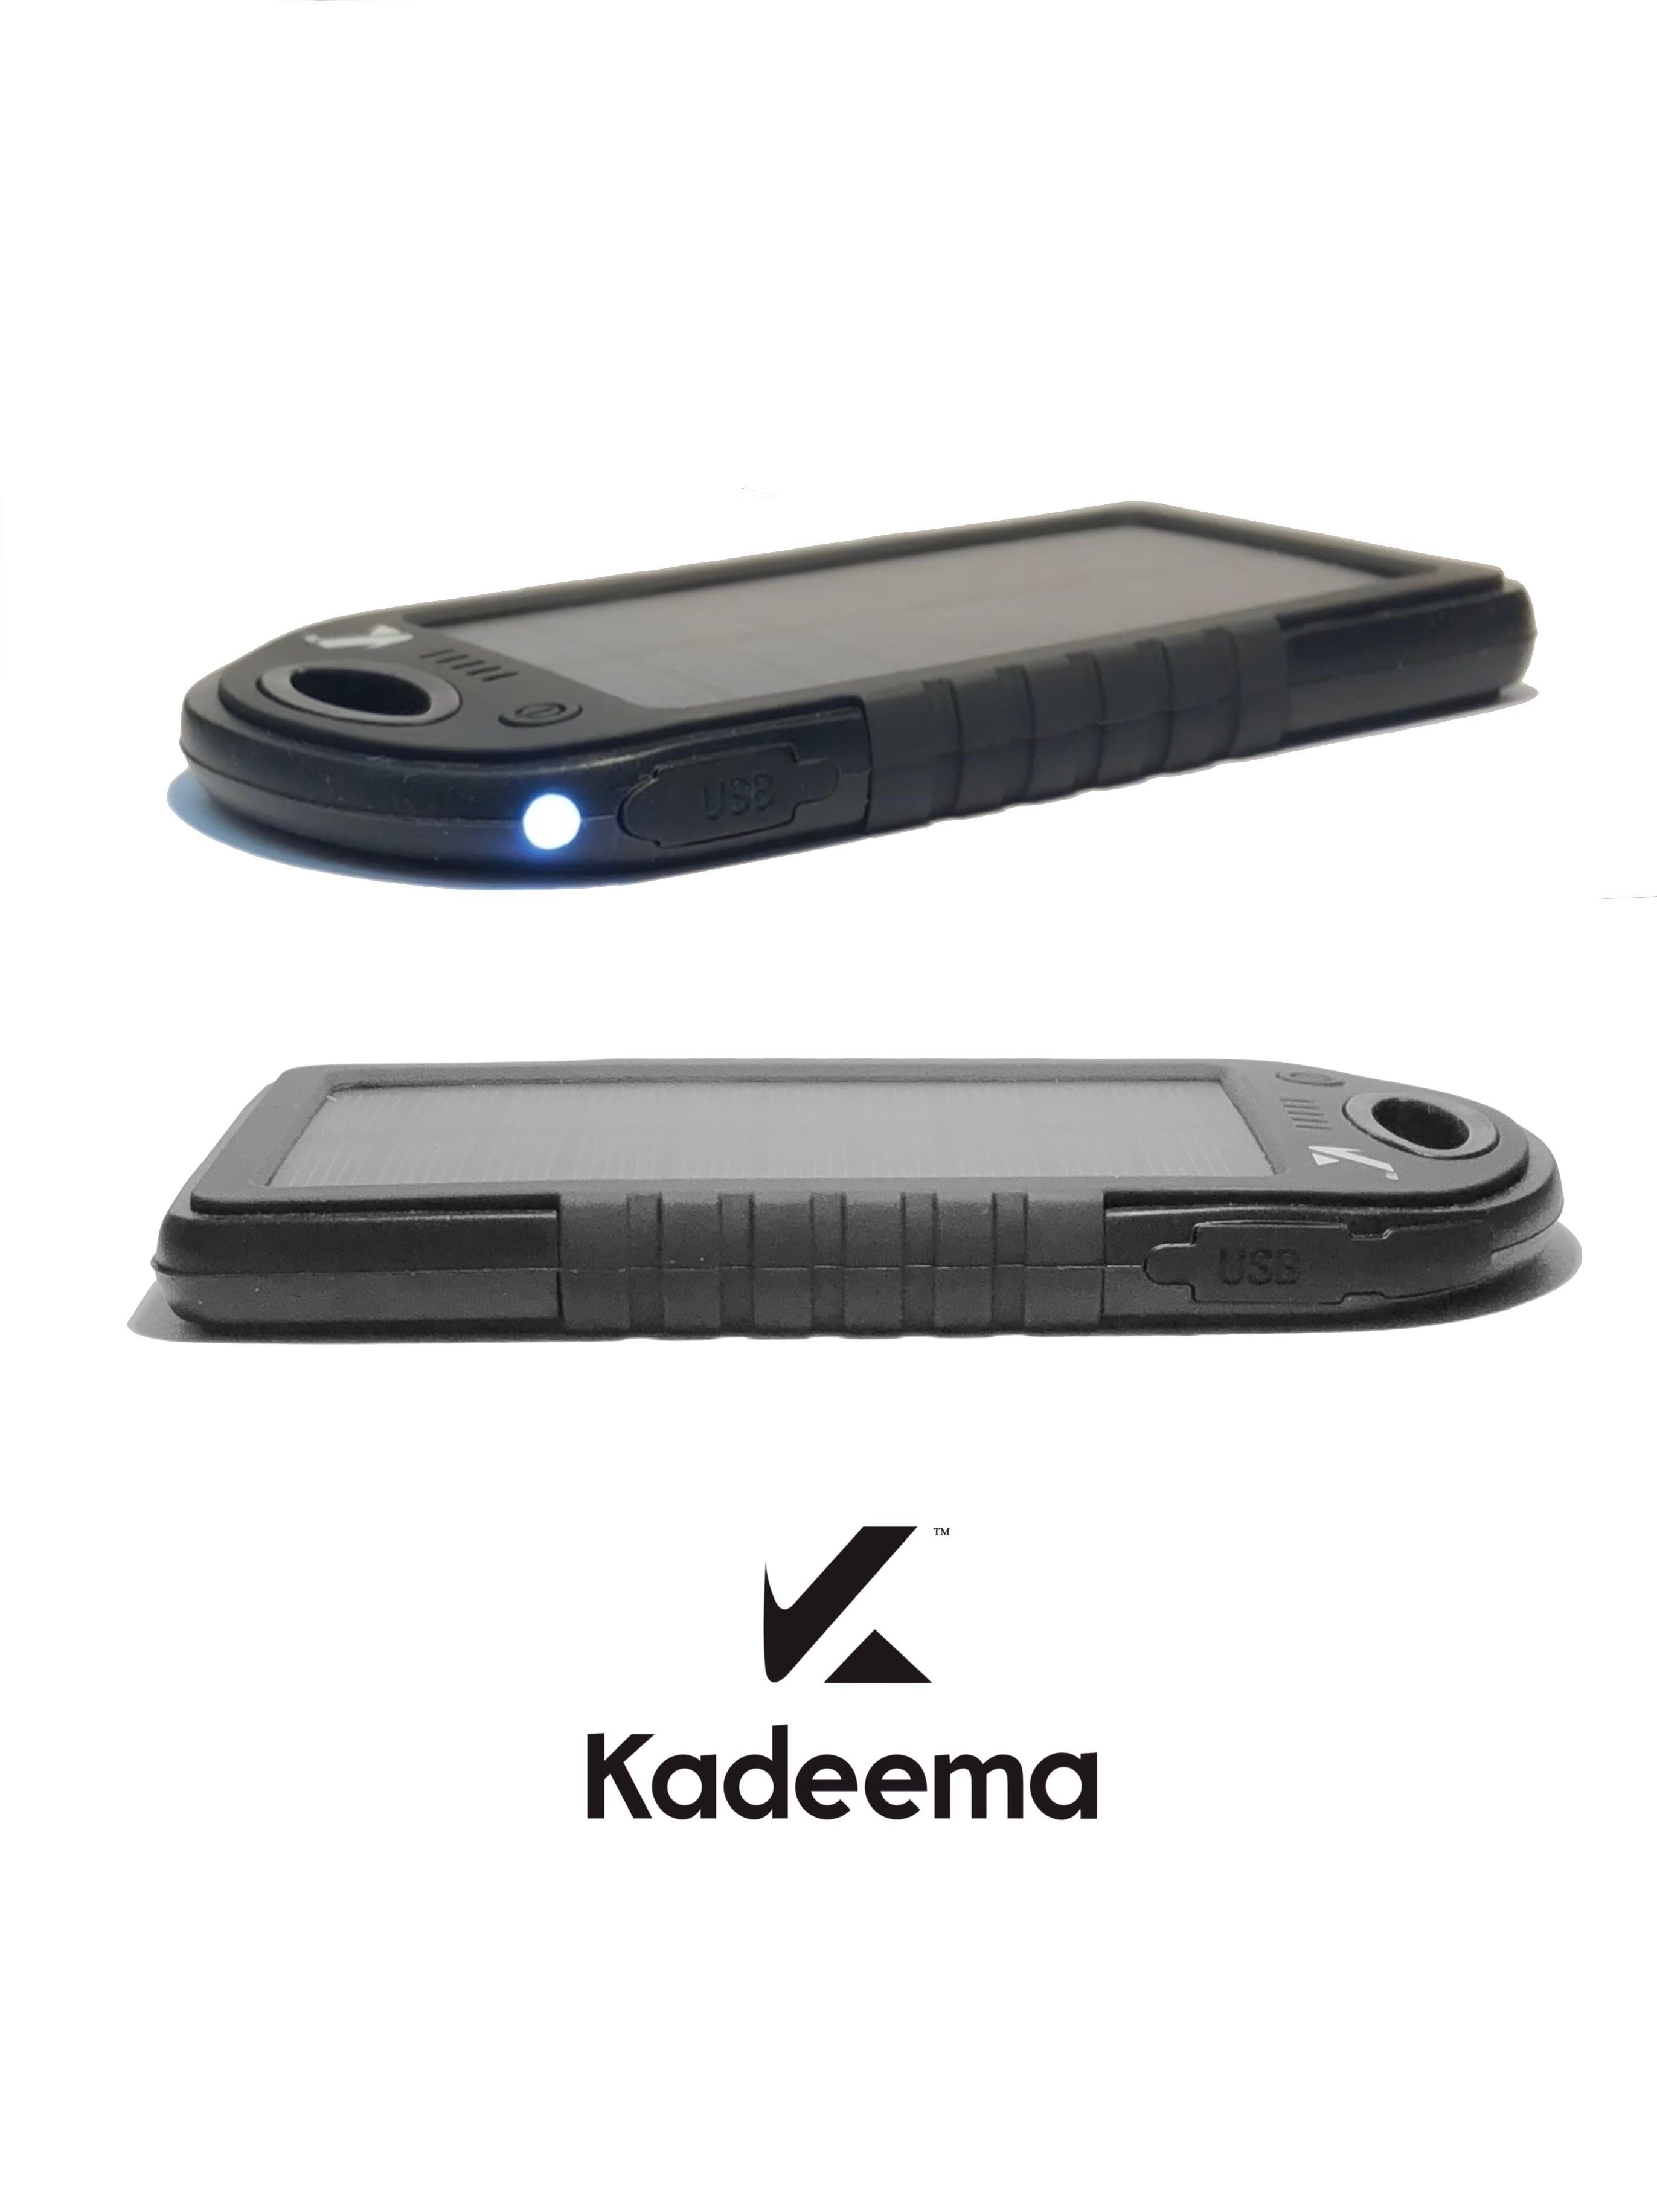 Check Out The Very First Product From Kadeema A Portable Power Bank For Charging Phones Tablets Wi Solar Charger Portable Portable Power Bank Solar Charger